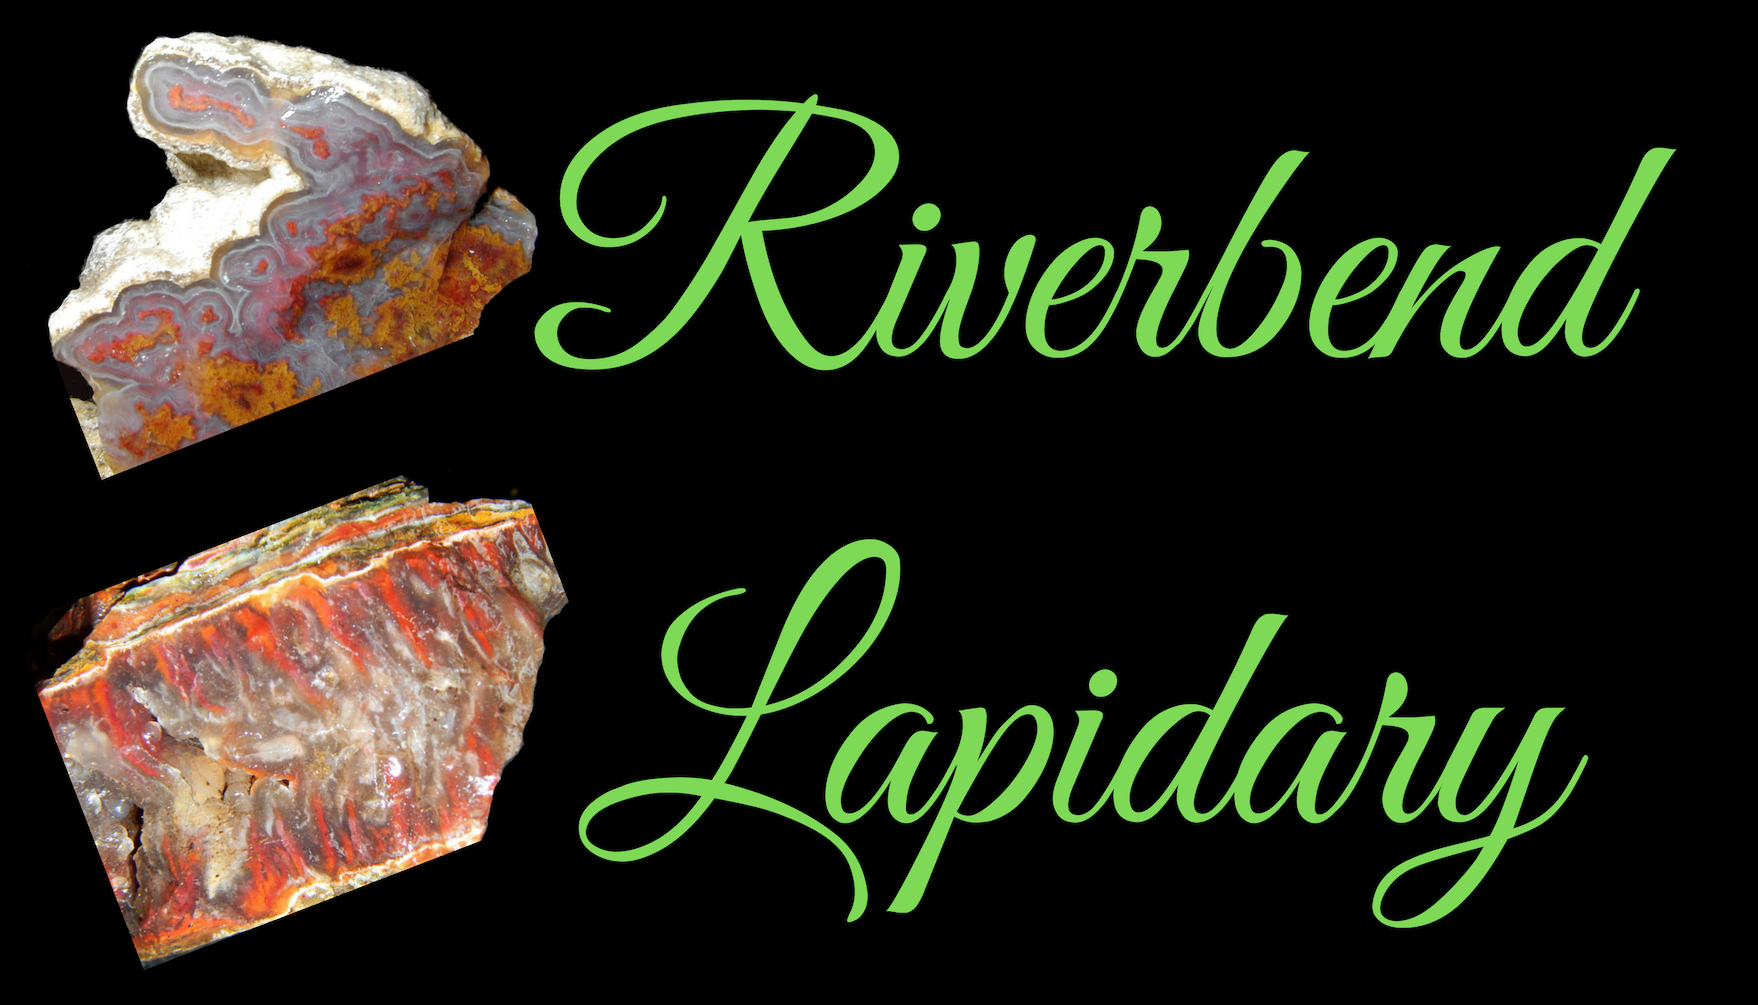 Riverbend Lapidary - Lapidary Rough Cabbing Knapping Agate Jasper